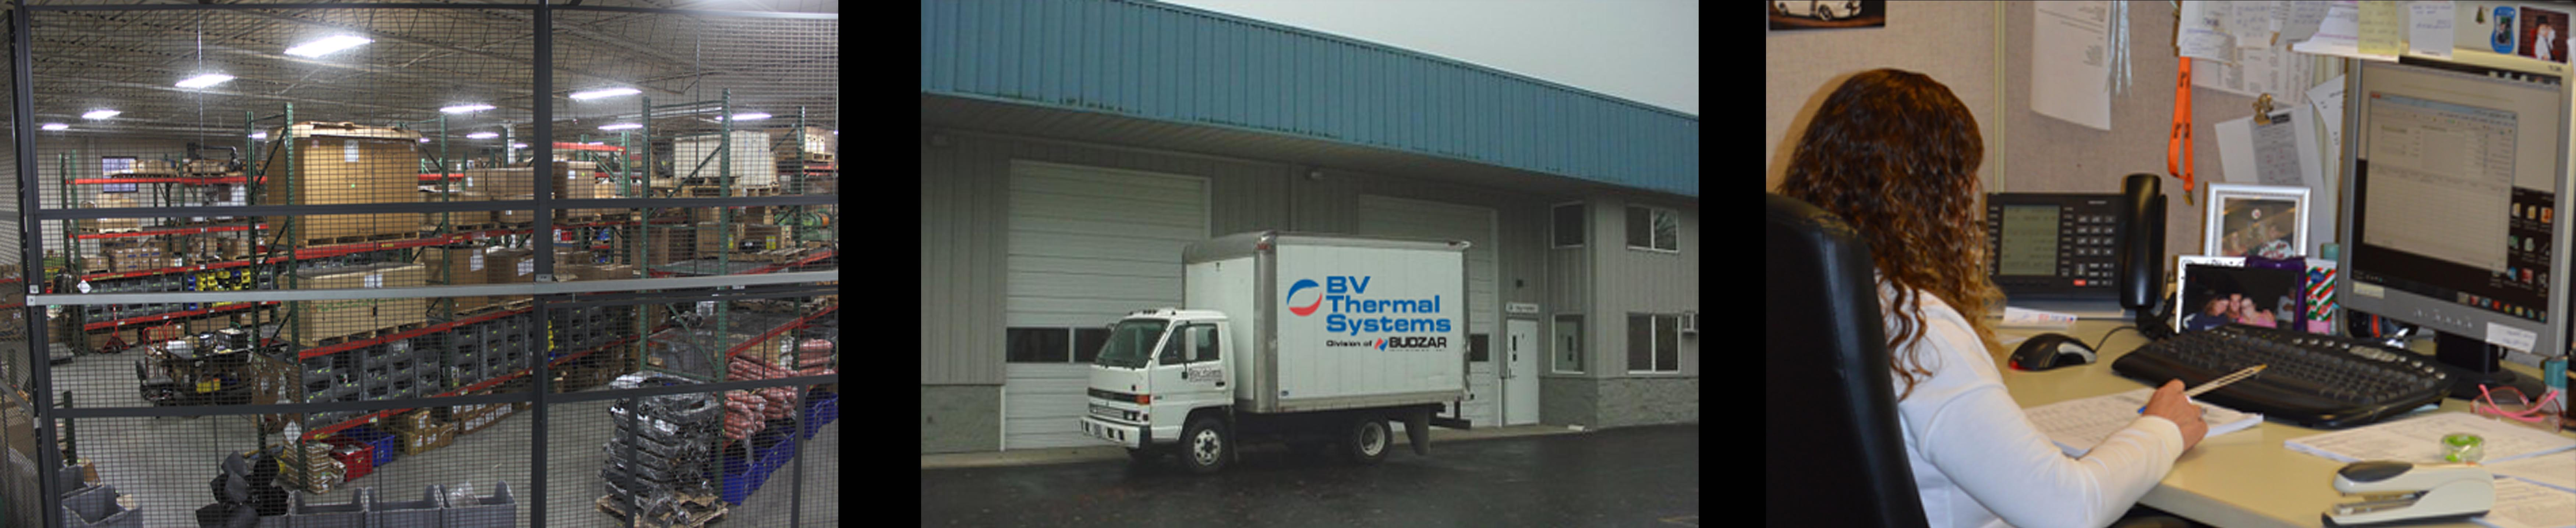 Service from BV Thermal Systems